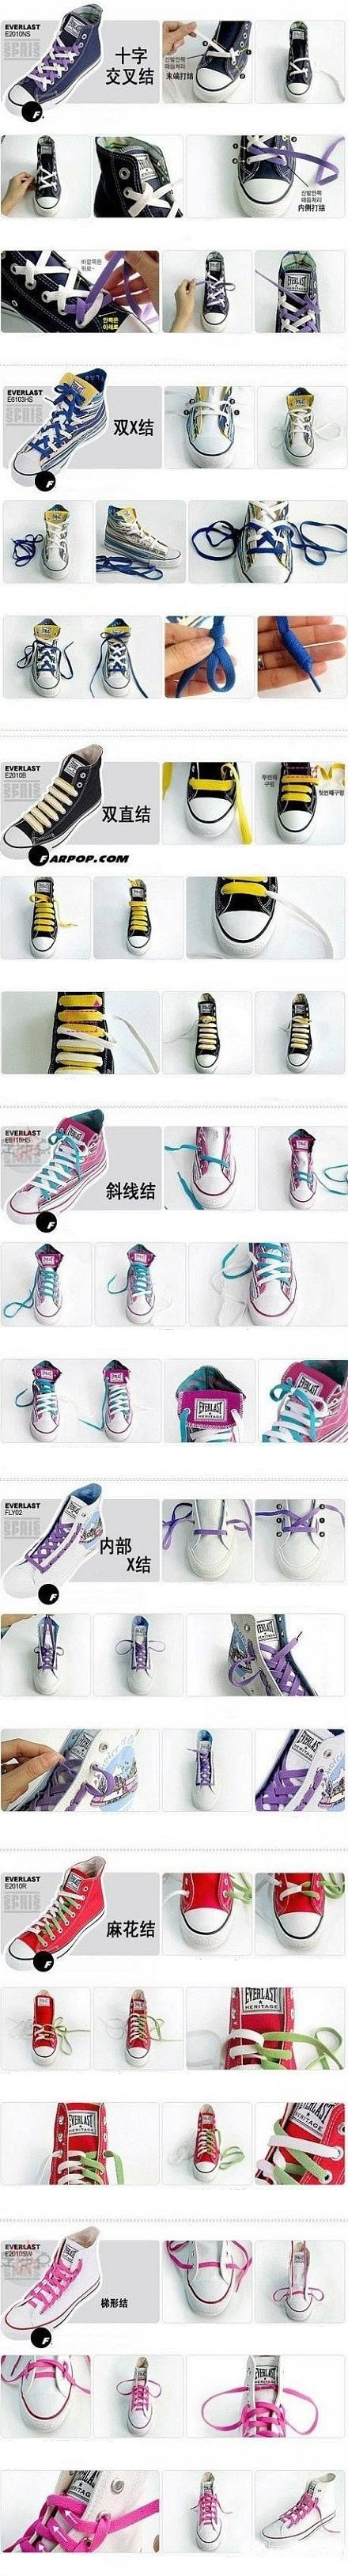 Cool Ways To Tie Your Shoe Laces : DIY and Craft Tutorials